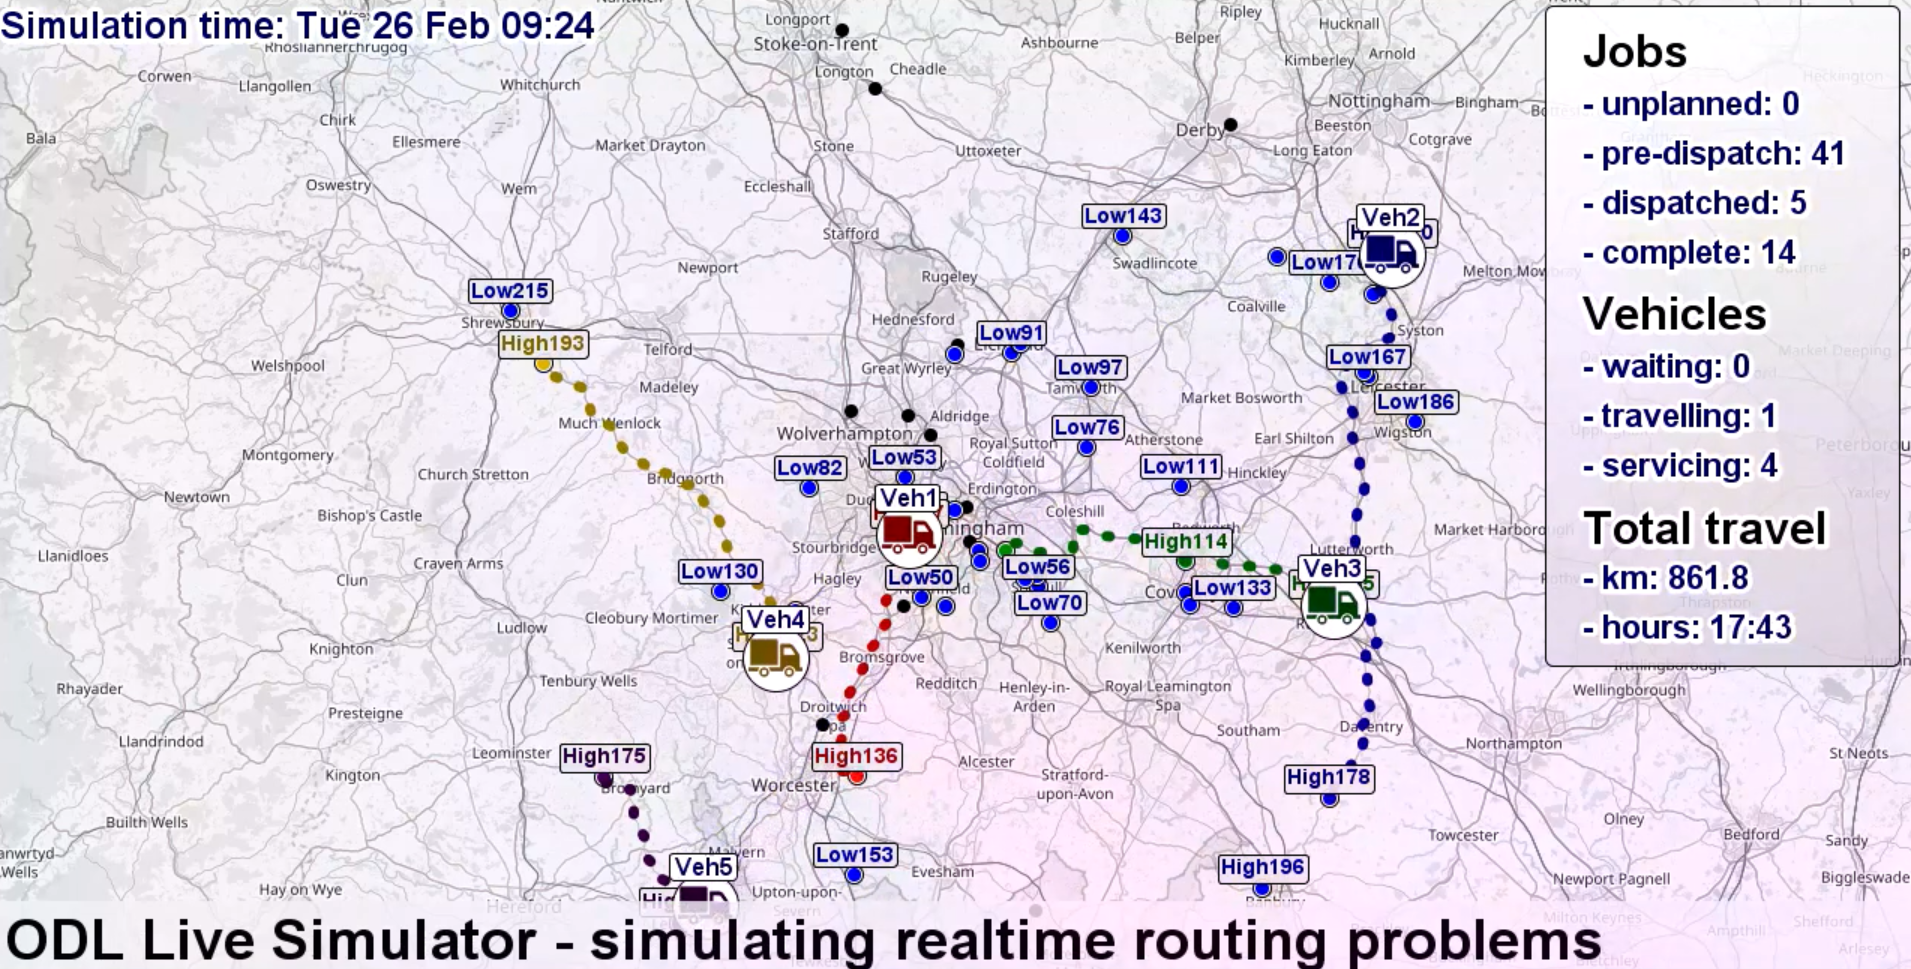 ODL Live Simulator of route optimisation software on a map of the united kingdom